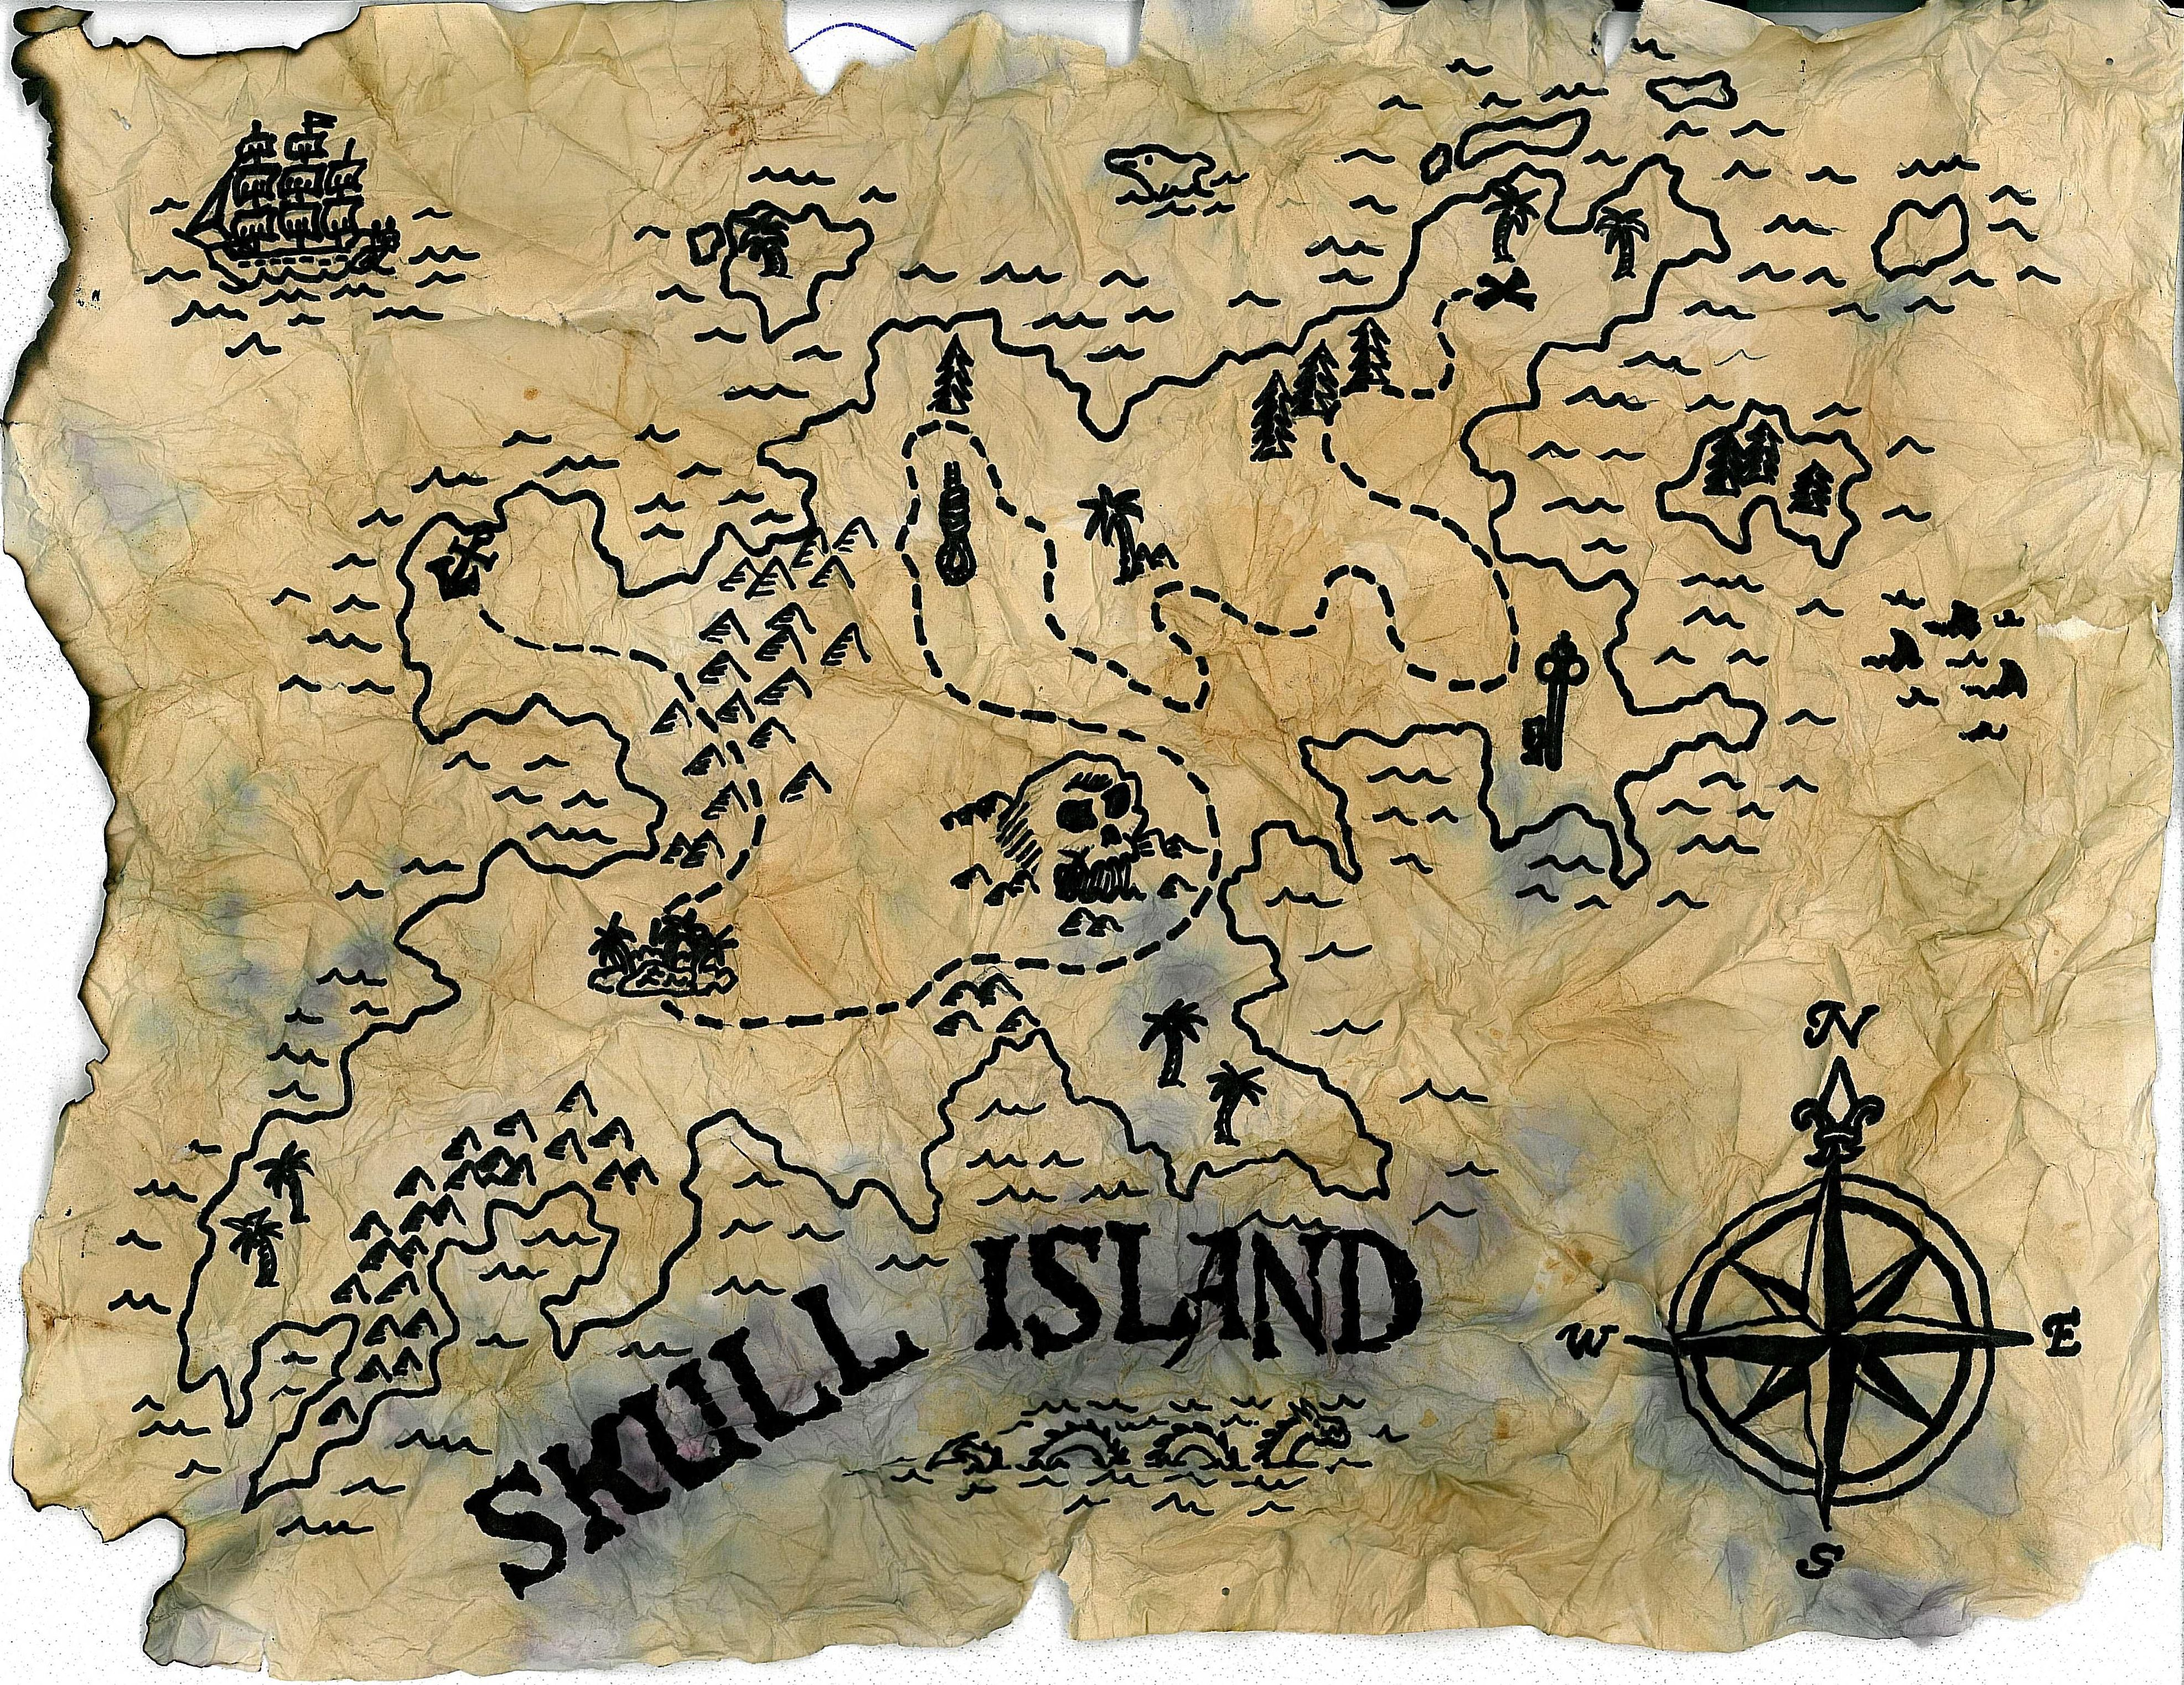 treasure_map__skull_island_by_pumpkinjack6-d30me8q   Shipwreck ... on national treasure map, the hunger games map, the lion king map, monsters university map, raiders of the lost ark map, robin hood map, headless horseman map, lone survivor map, the most dangerous game map, saving private ryan map, the ring map, a princess of mars map, jurassic park map,